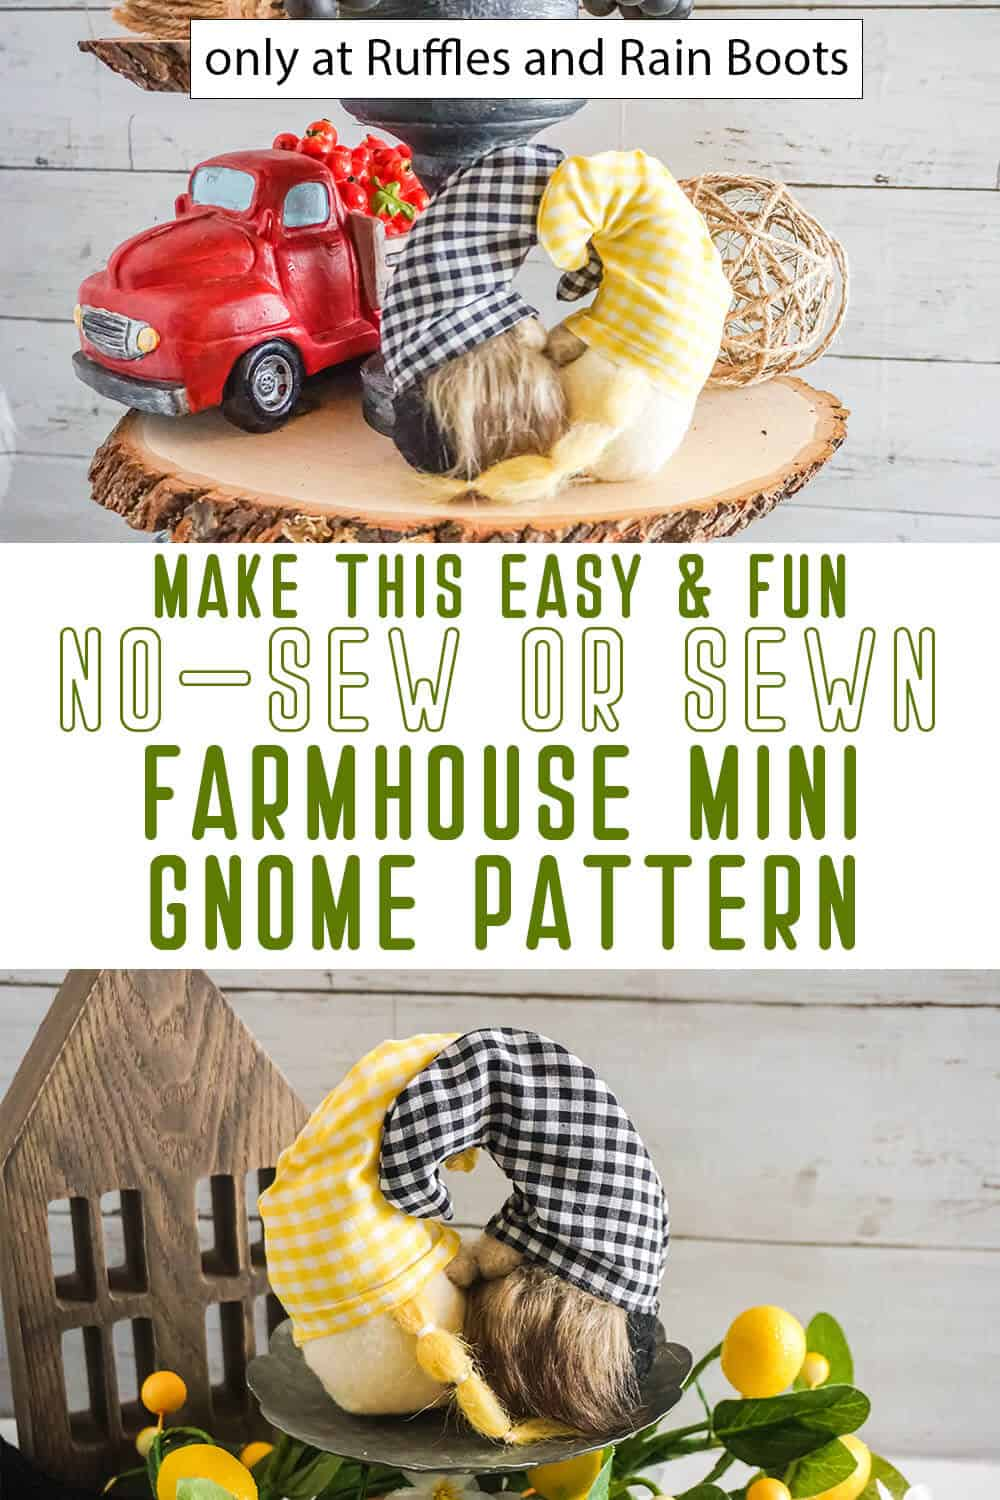 photo collage of farmhouse mini gnome pattern sewn or no-sew with text which reads make this easy & fun no-sew or sewn farmhouse mini gnome pattern